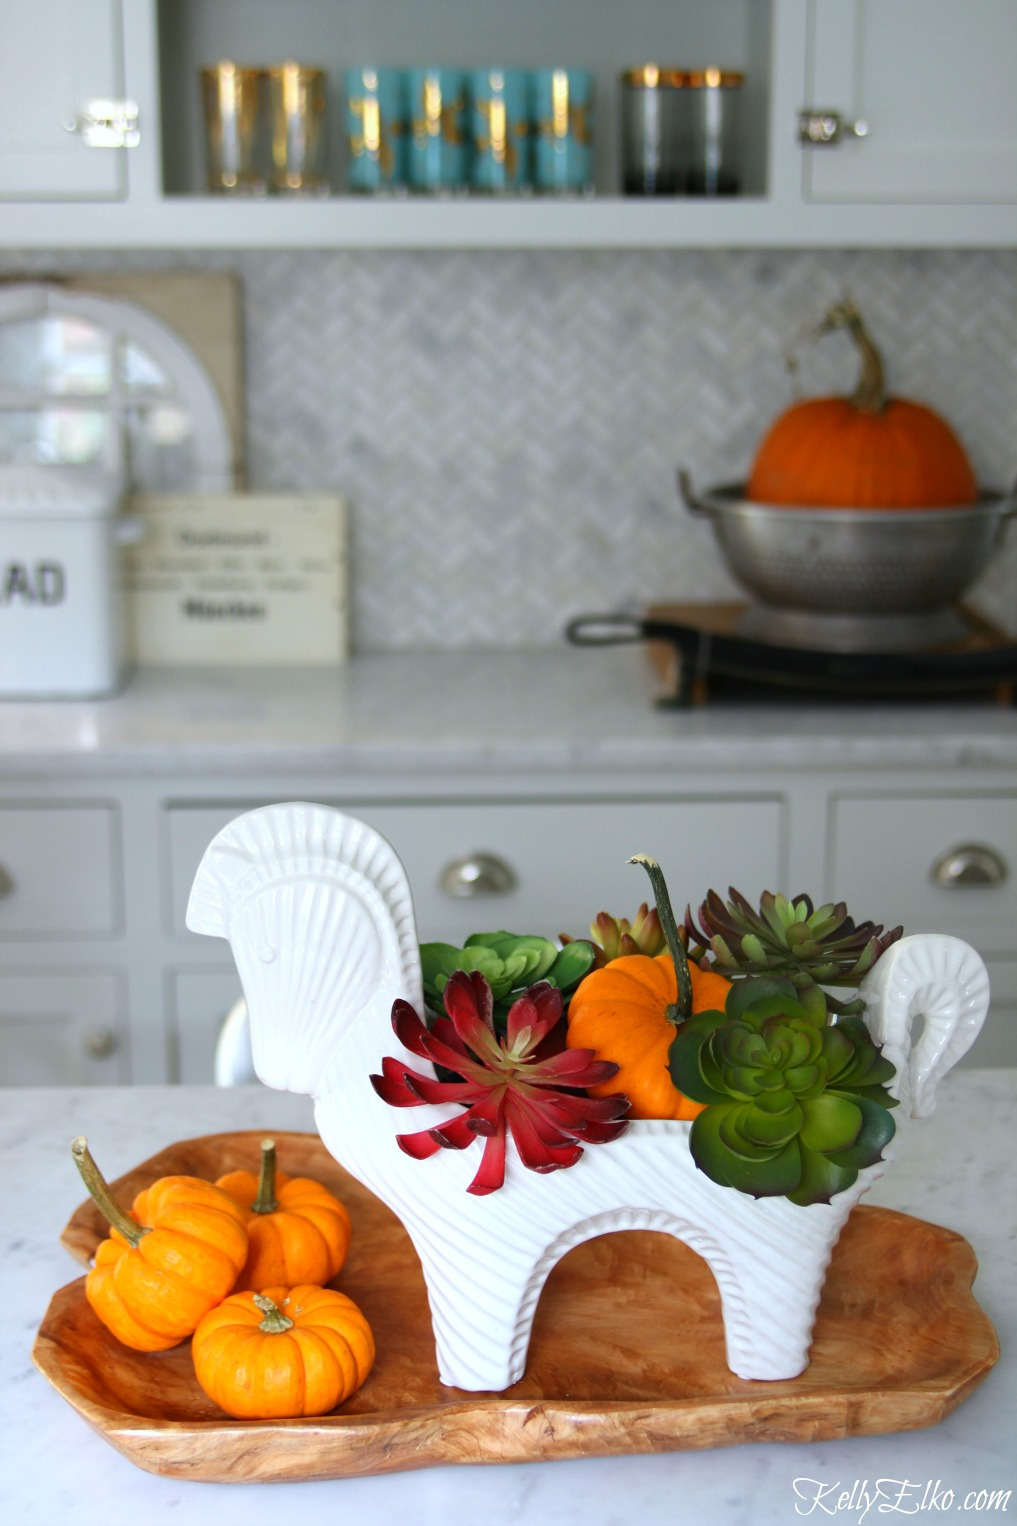 Make a faux succulent centerpiece for fall - LOVE the white horse vessel kellyelko.com